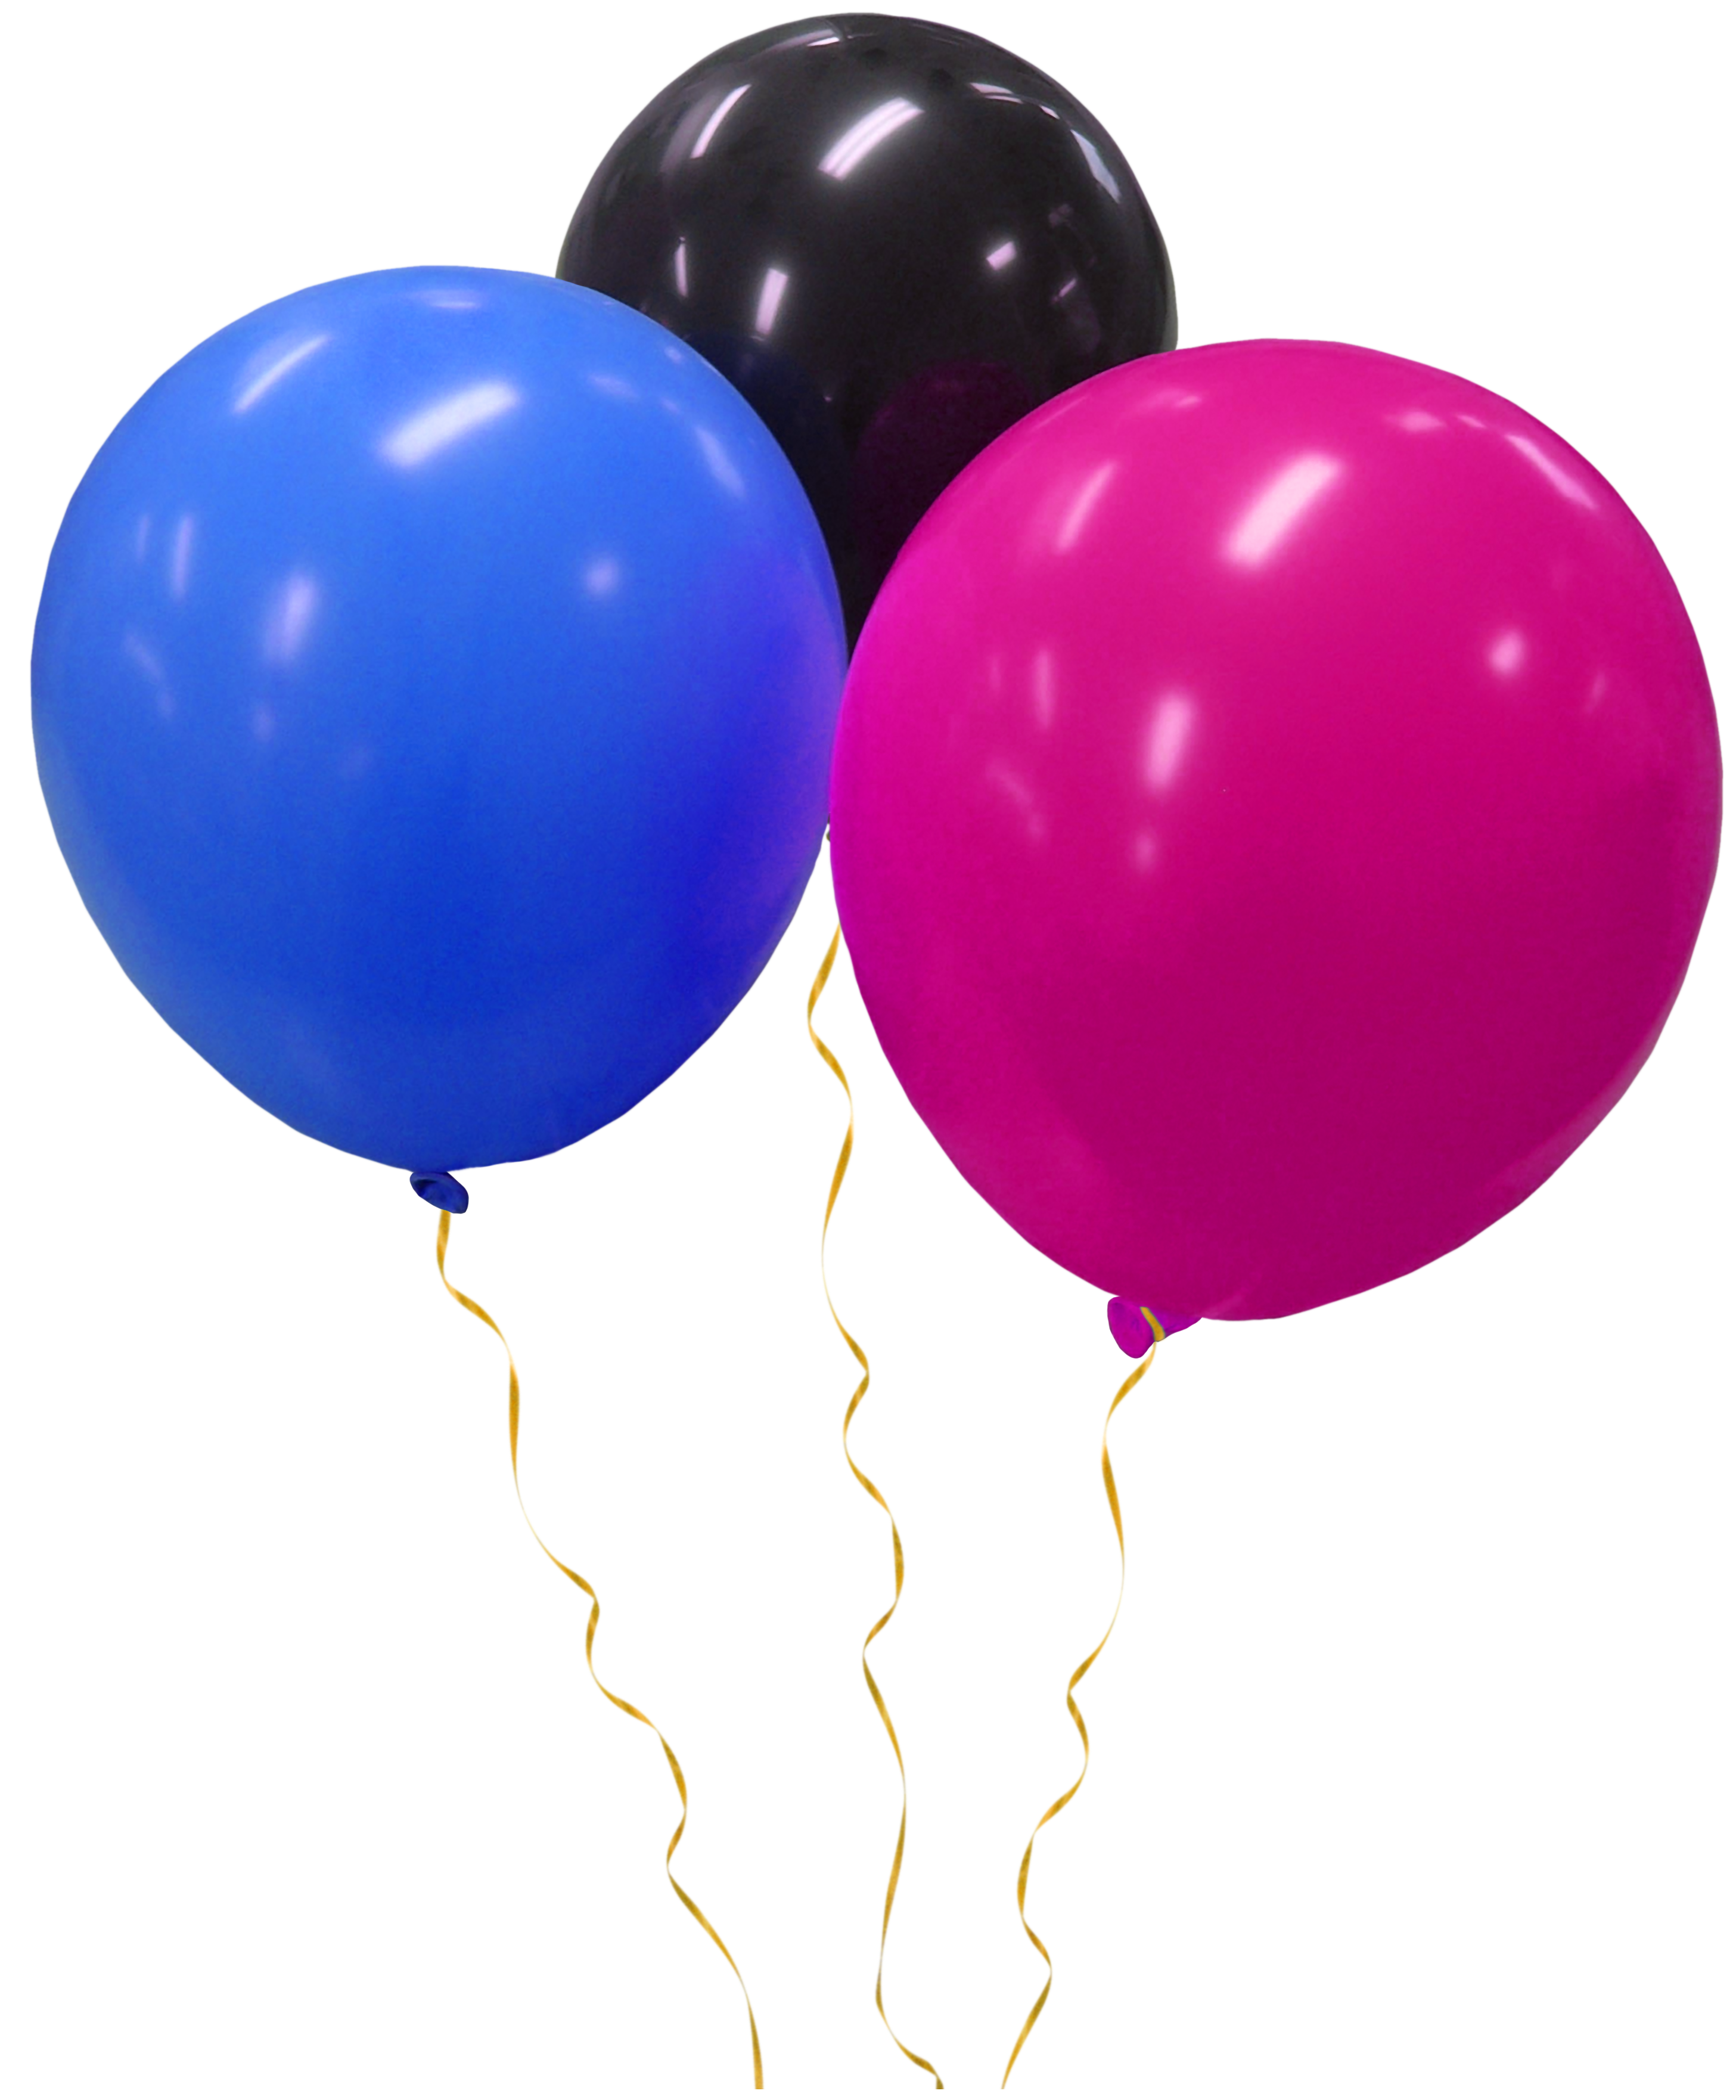 Transparent Three Balloons Clipart | Gallery Yopriceville - High ... image royalty free download